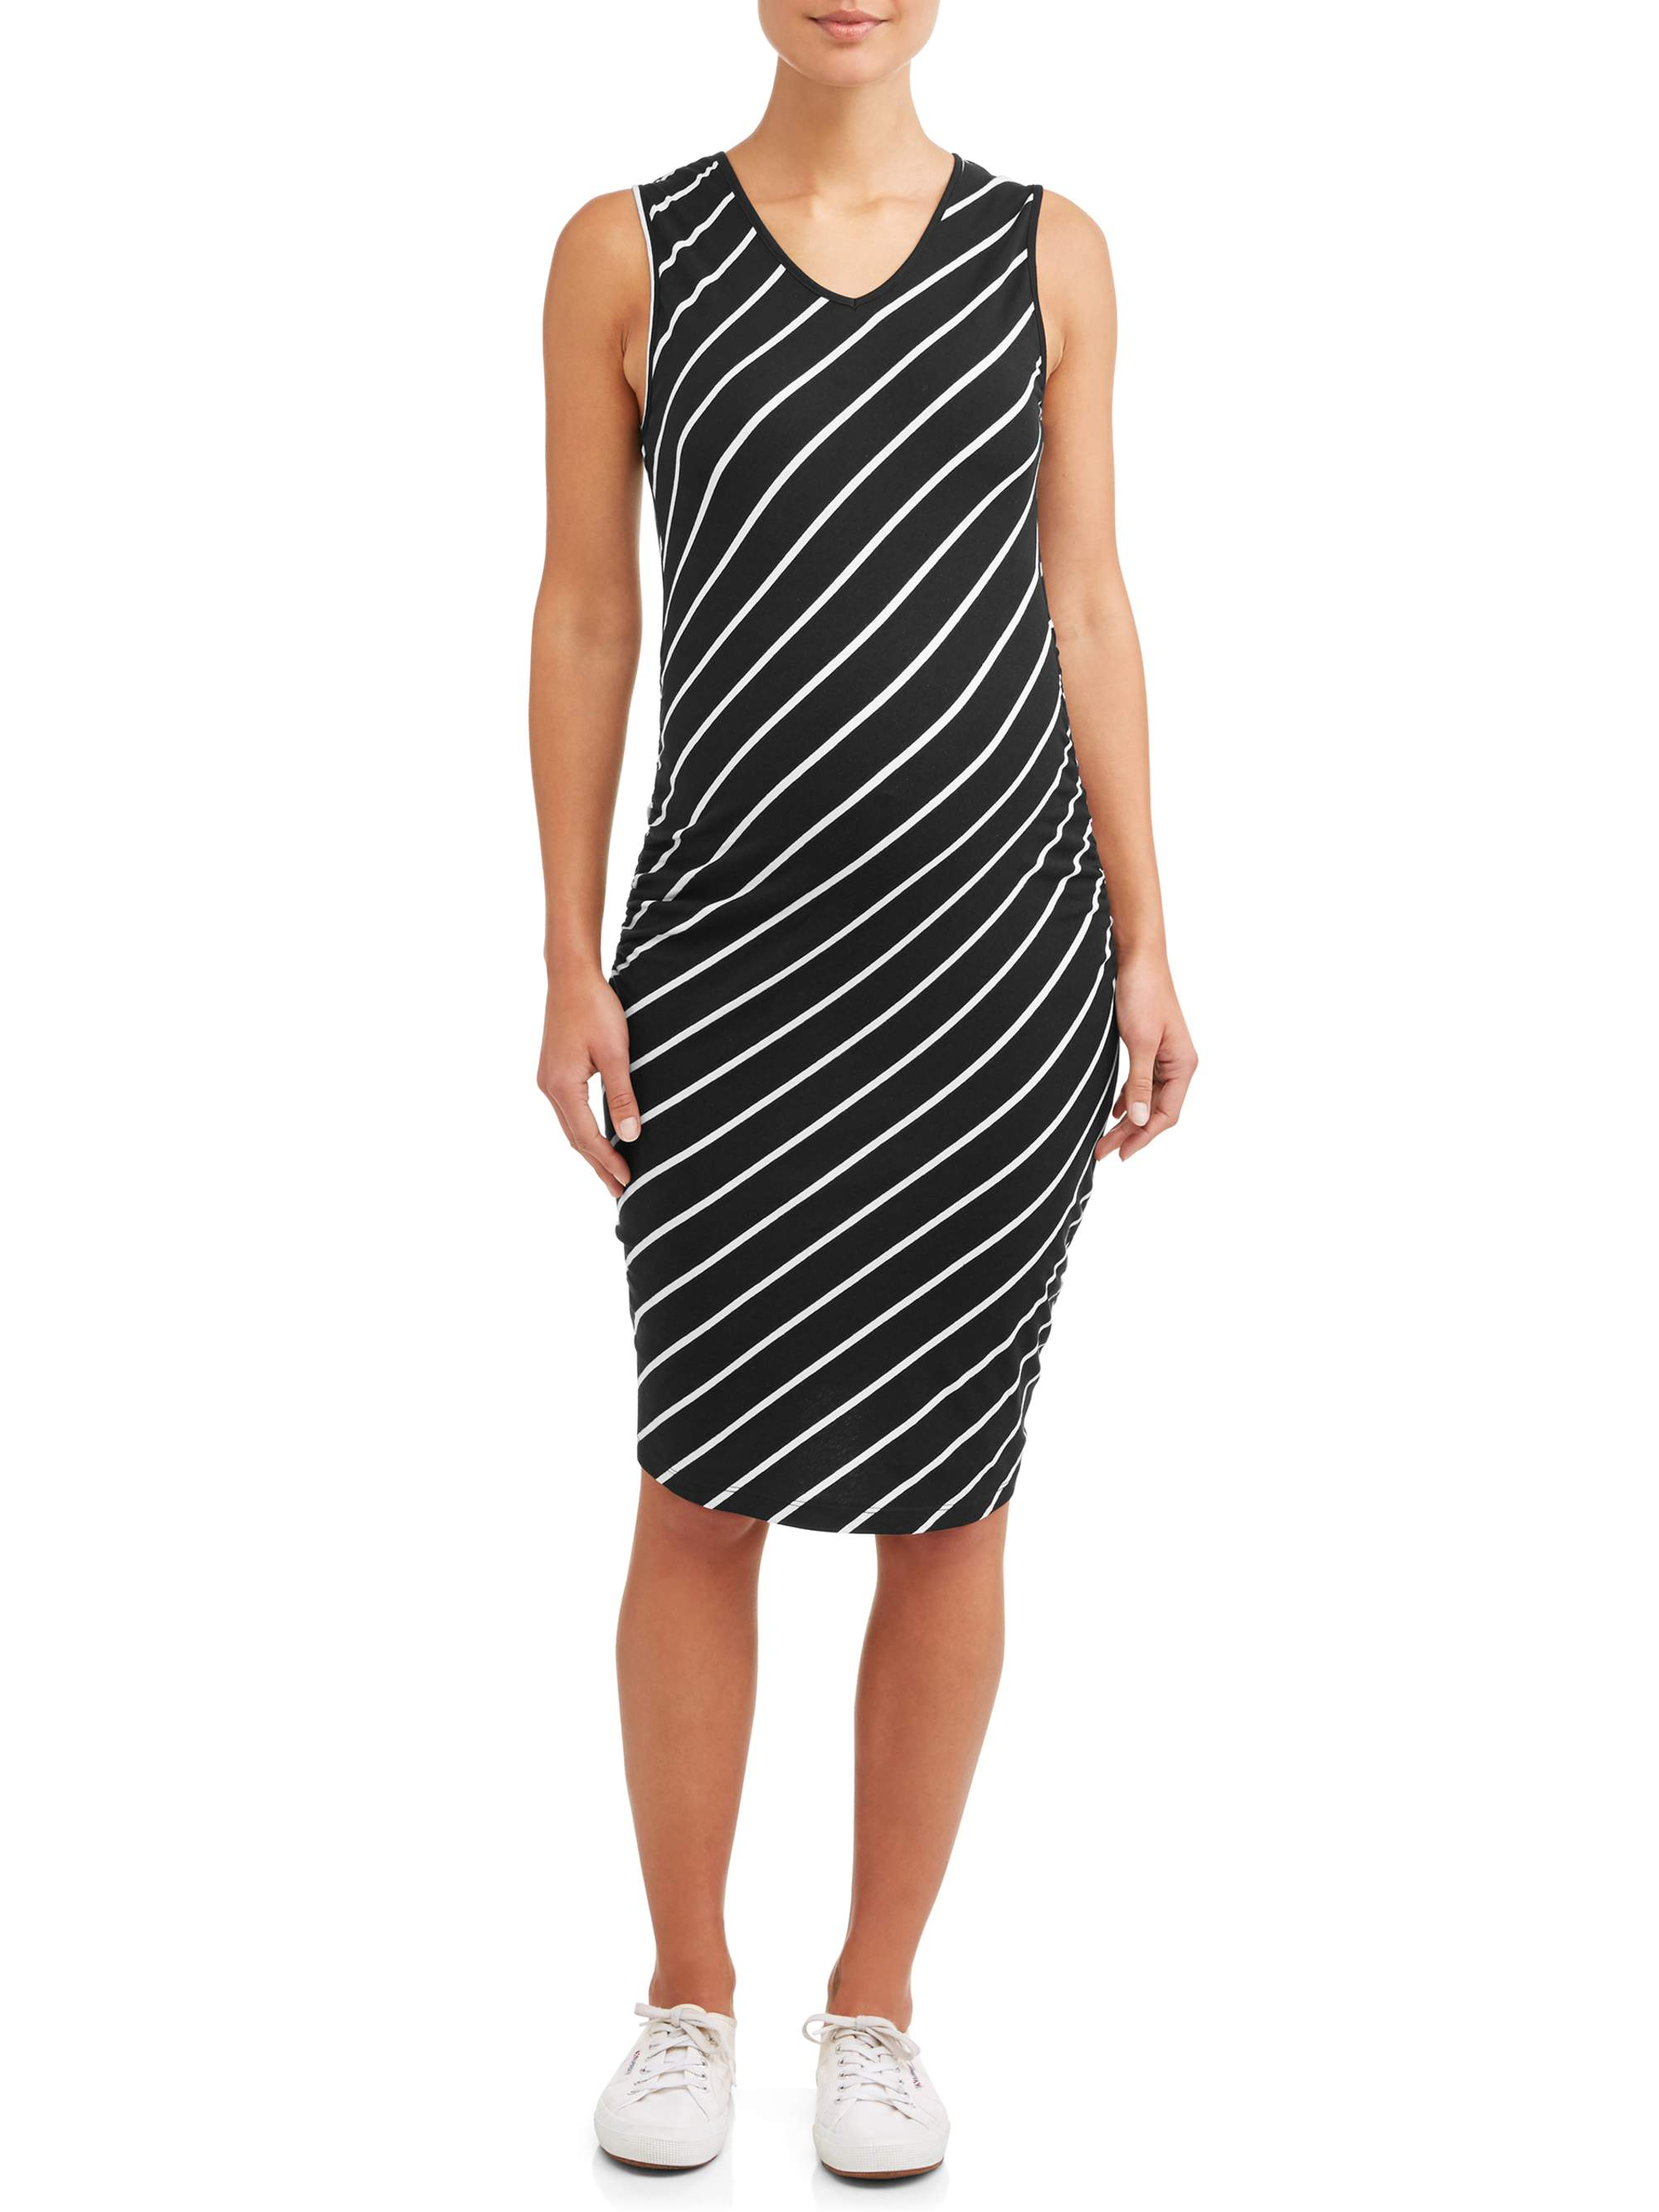 Maternity Stripe V-neck Sleeveless Knit Dress - Available in Plus Sizes